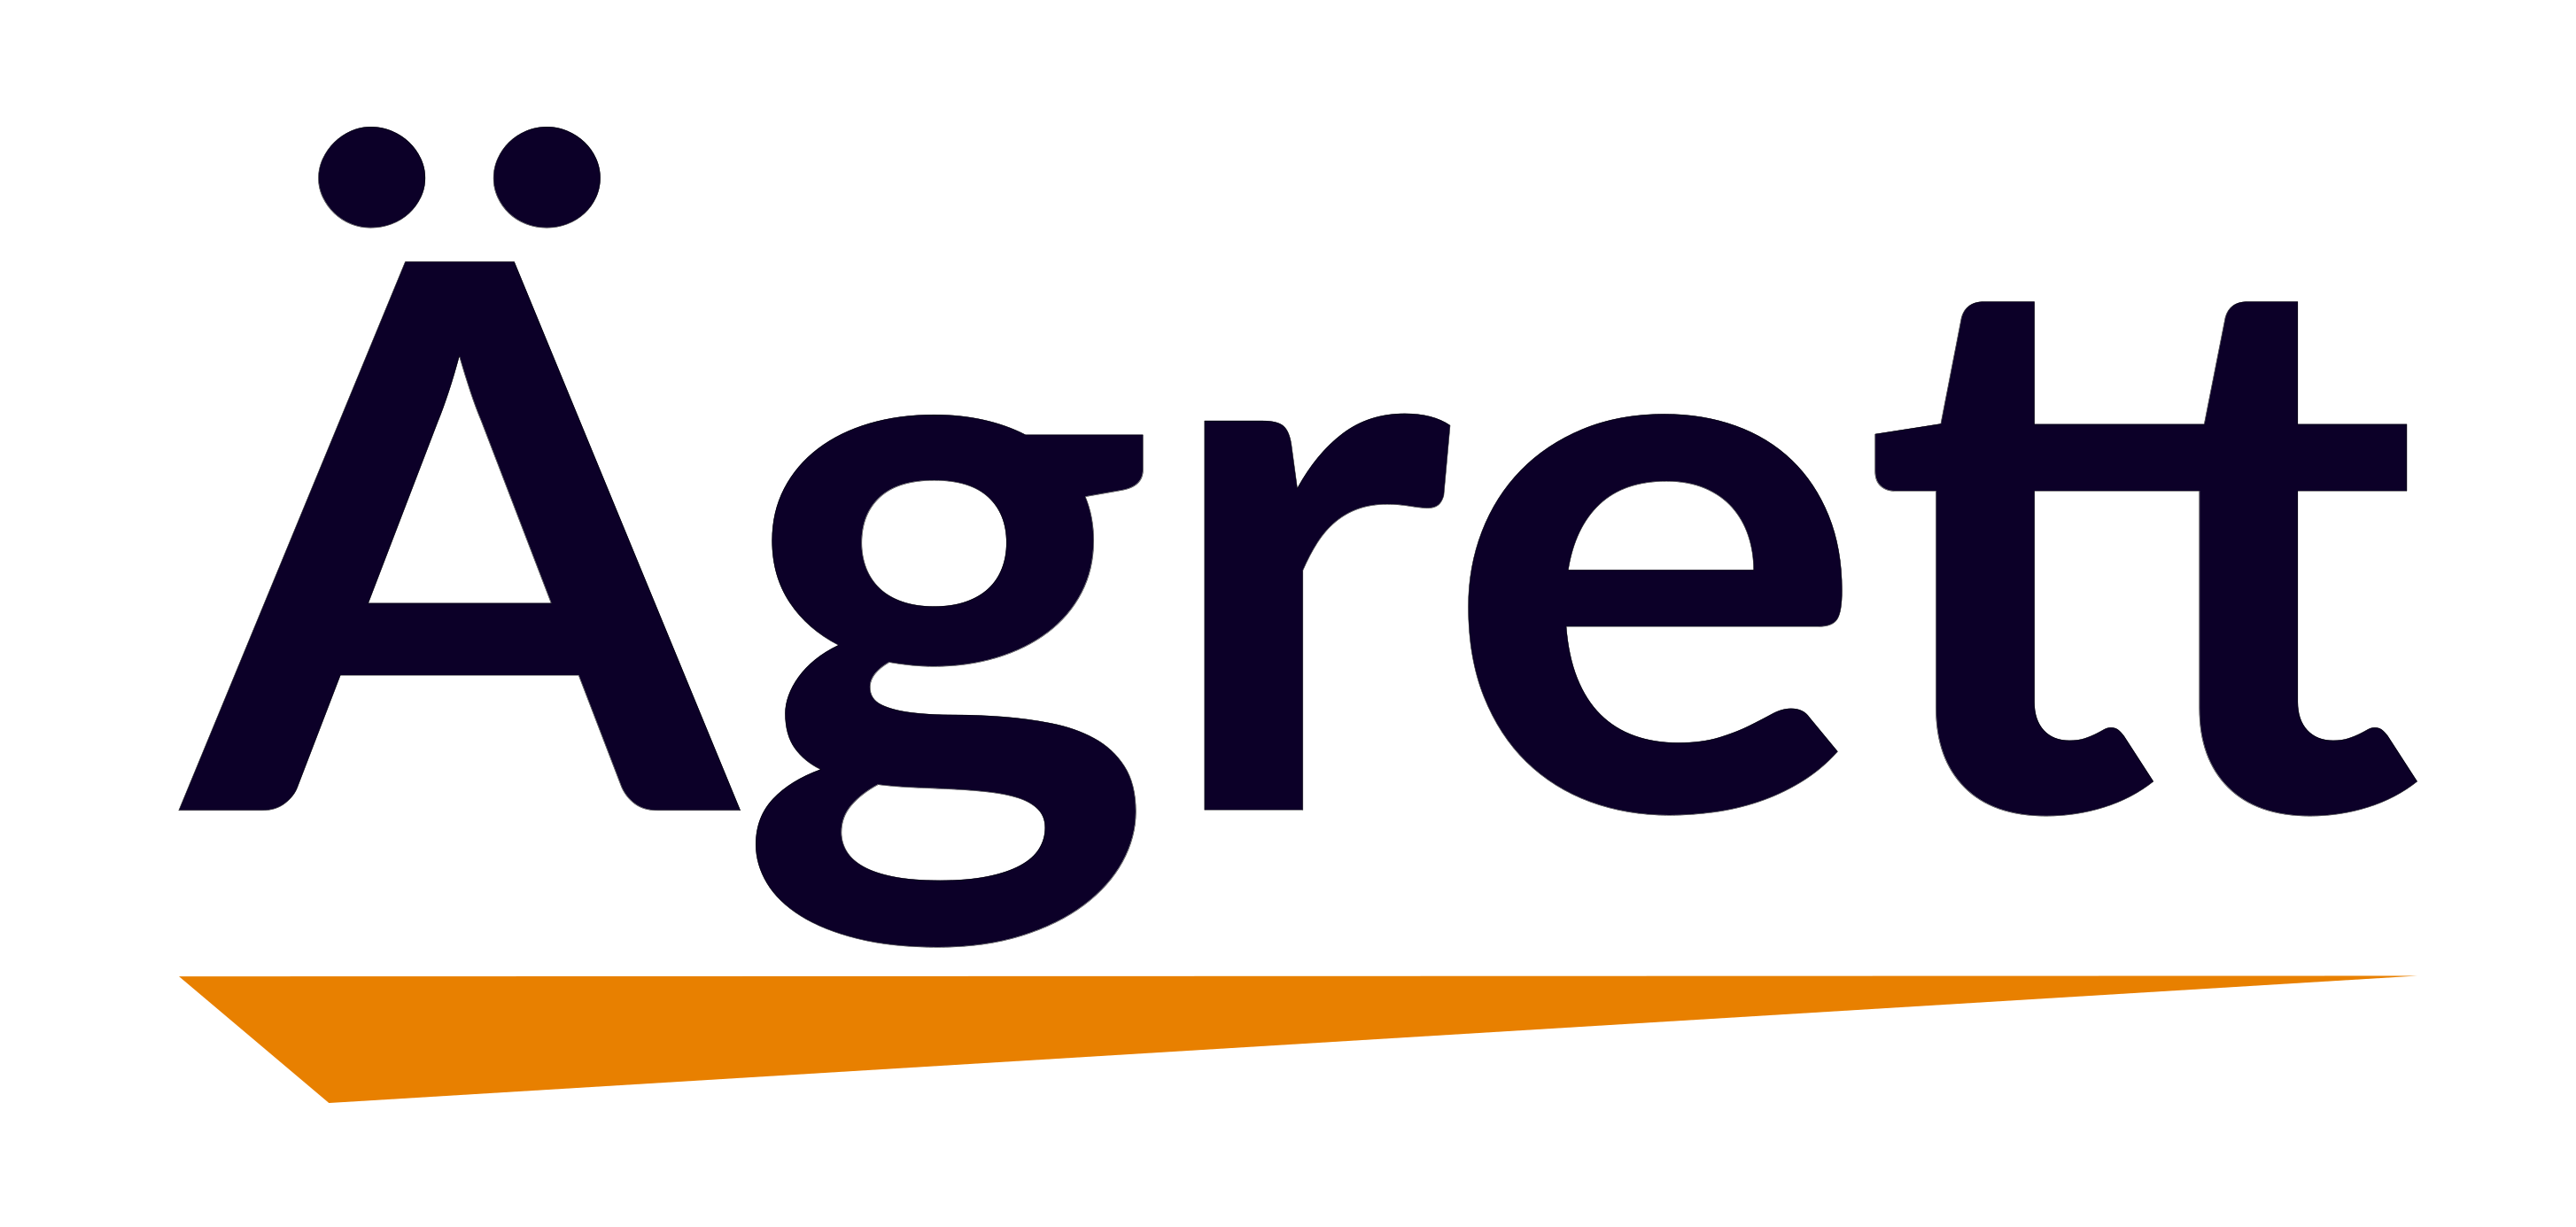 Ägrett International